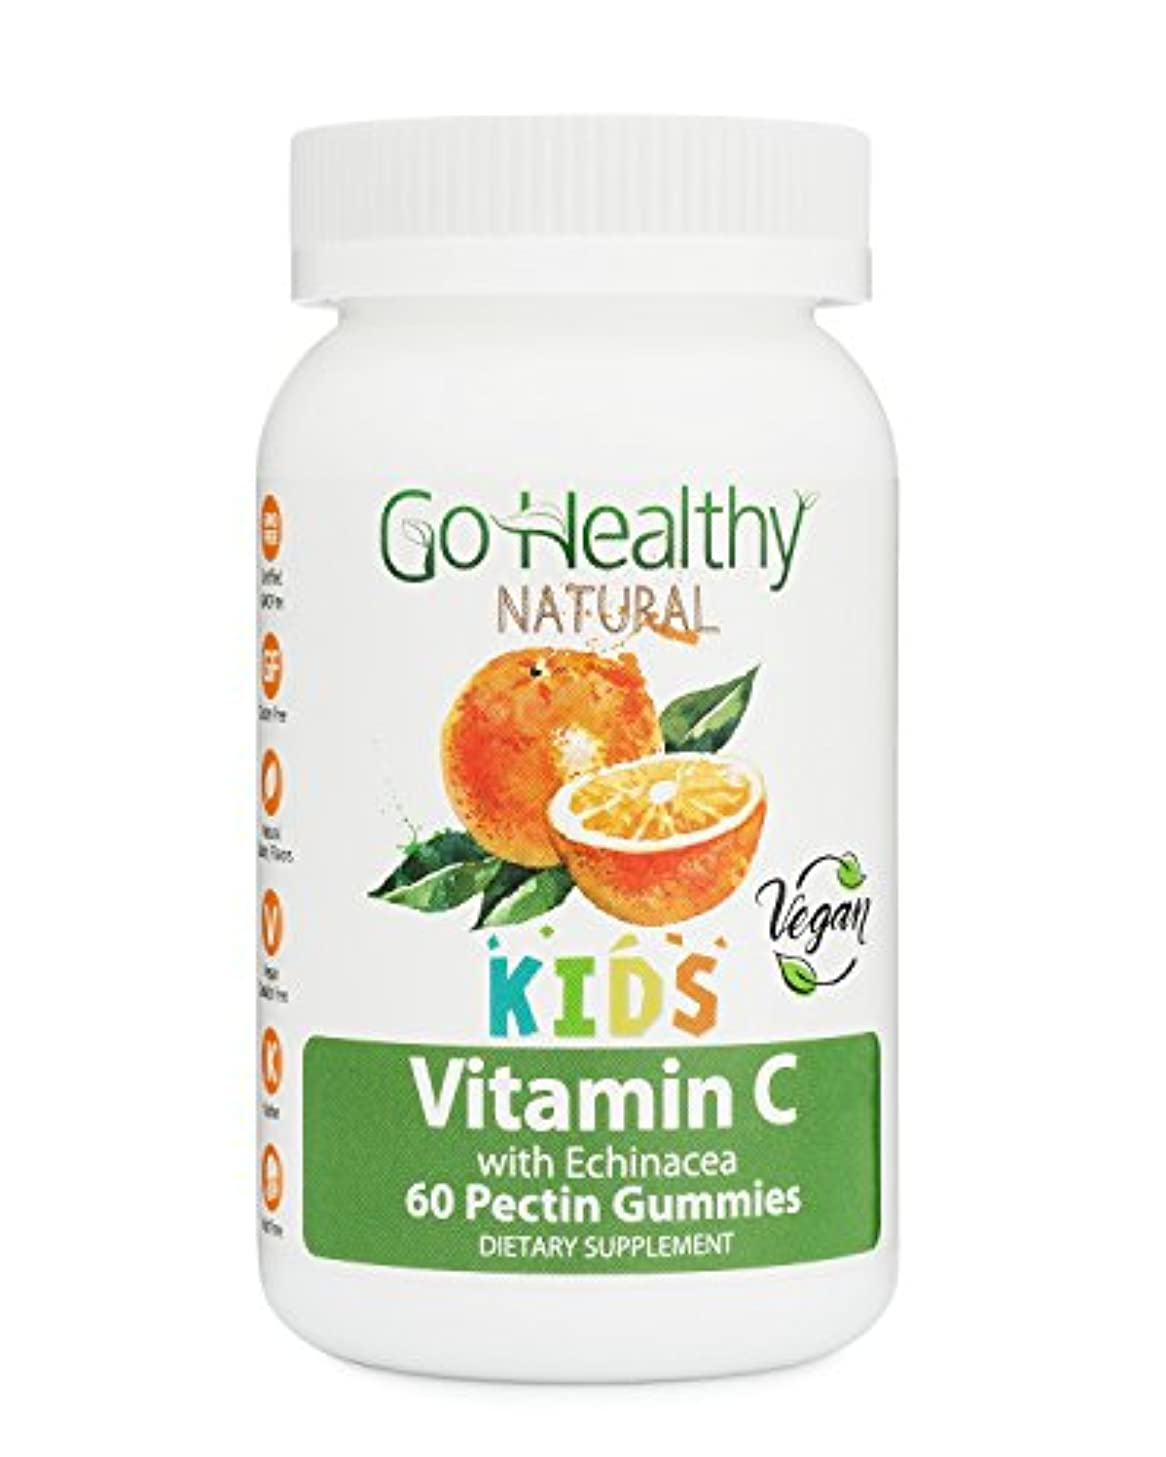 Go Healthy Natural Vitamin C Gummies with Echinacea for Kids, Vegan,100 mg Per Serving (60 Count) 60 Daily Servings, Gluten Free, Non-GMO, Halal, Kosher